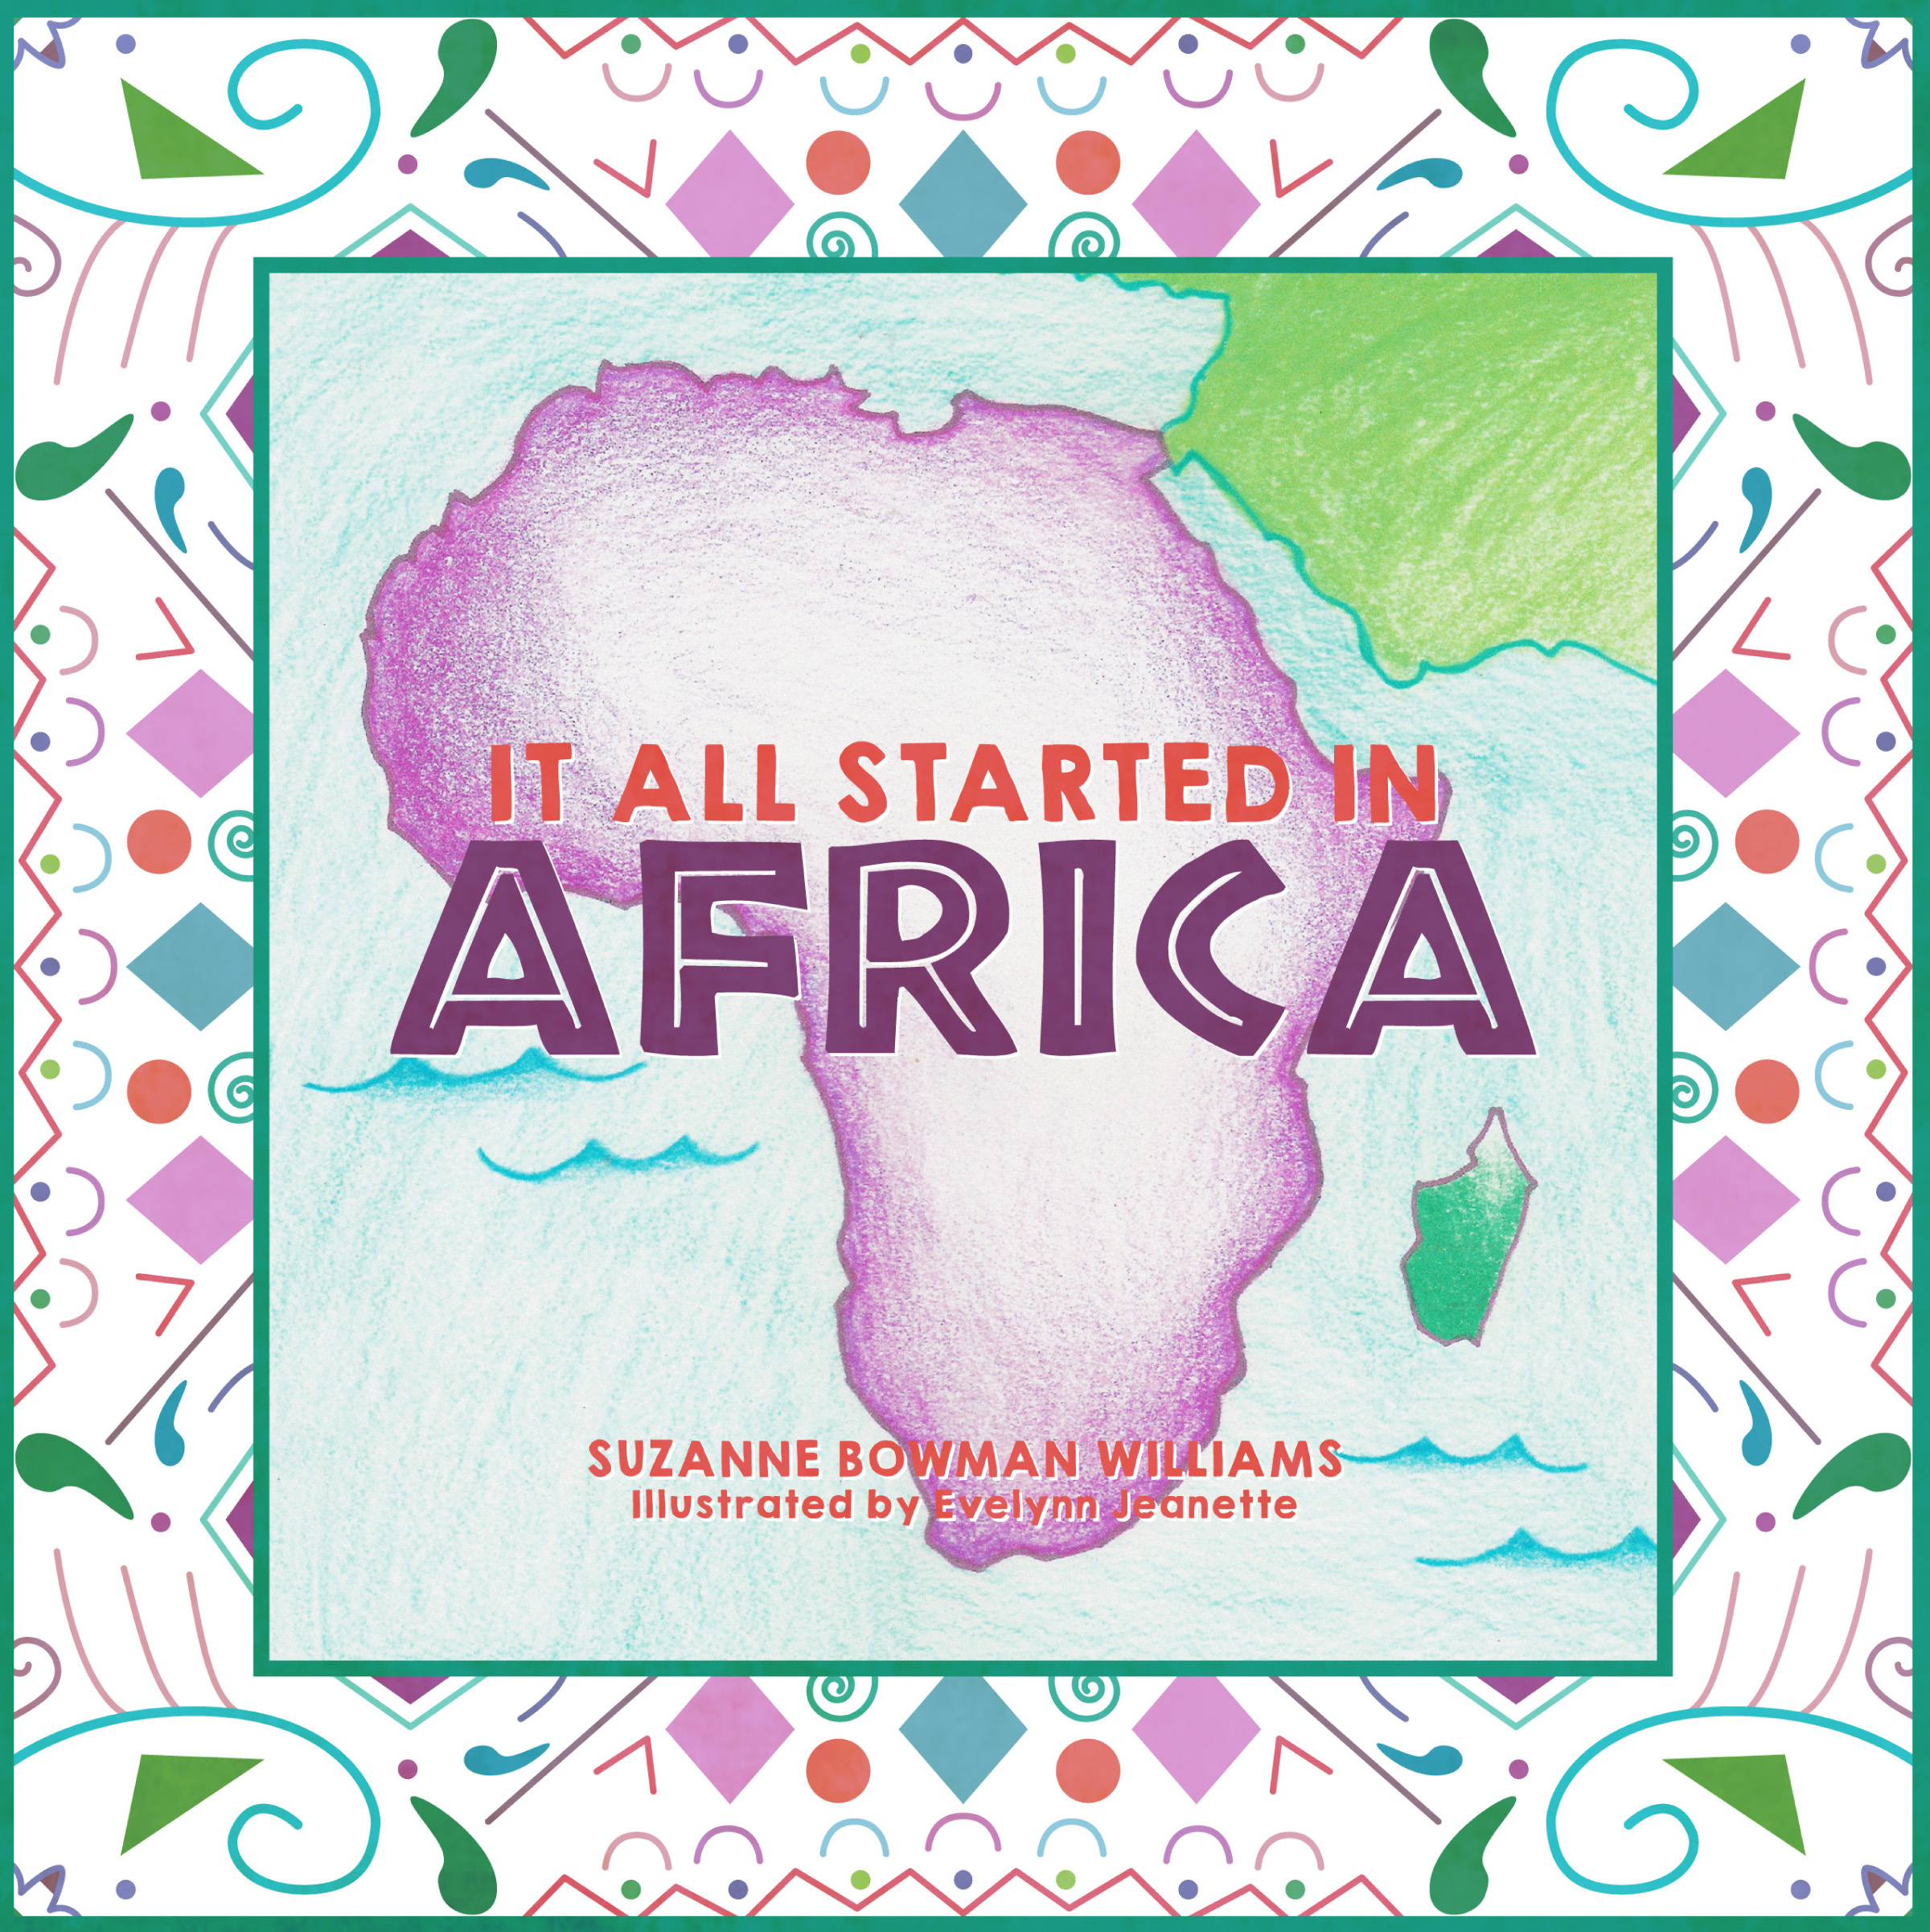 It All Started in Africa by Suzanne Bowman Williams